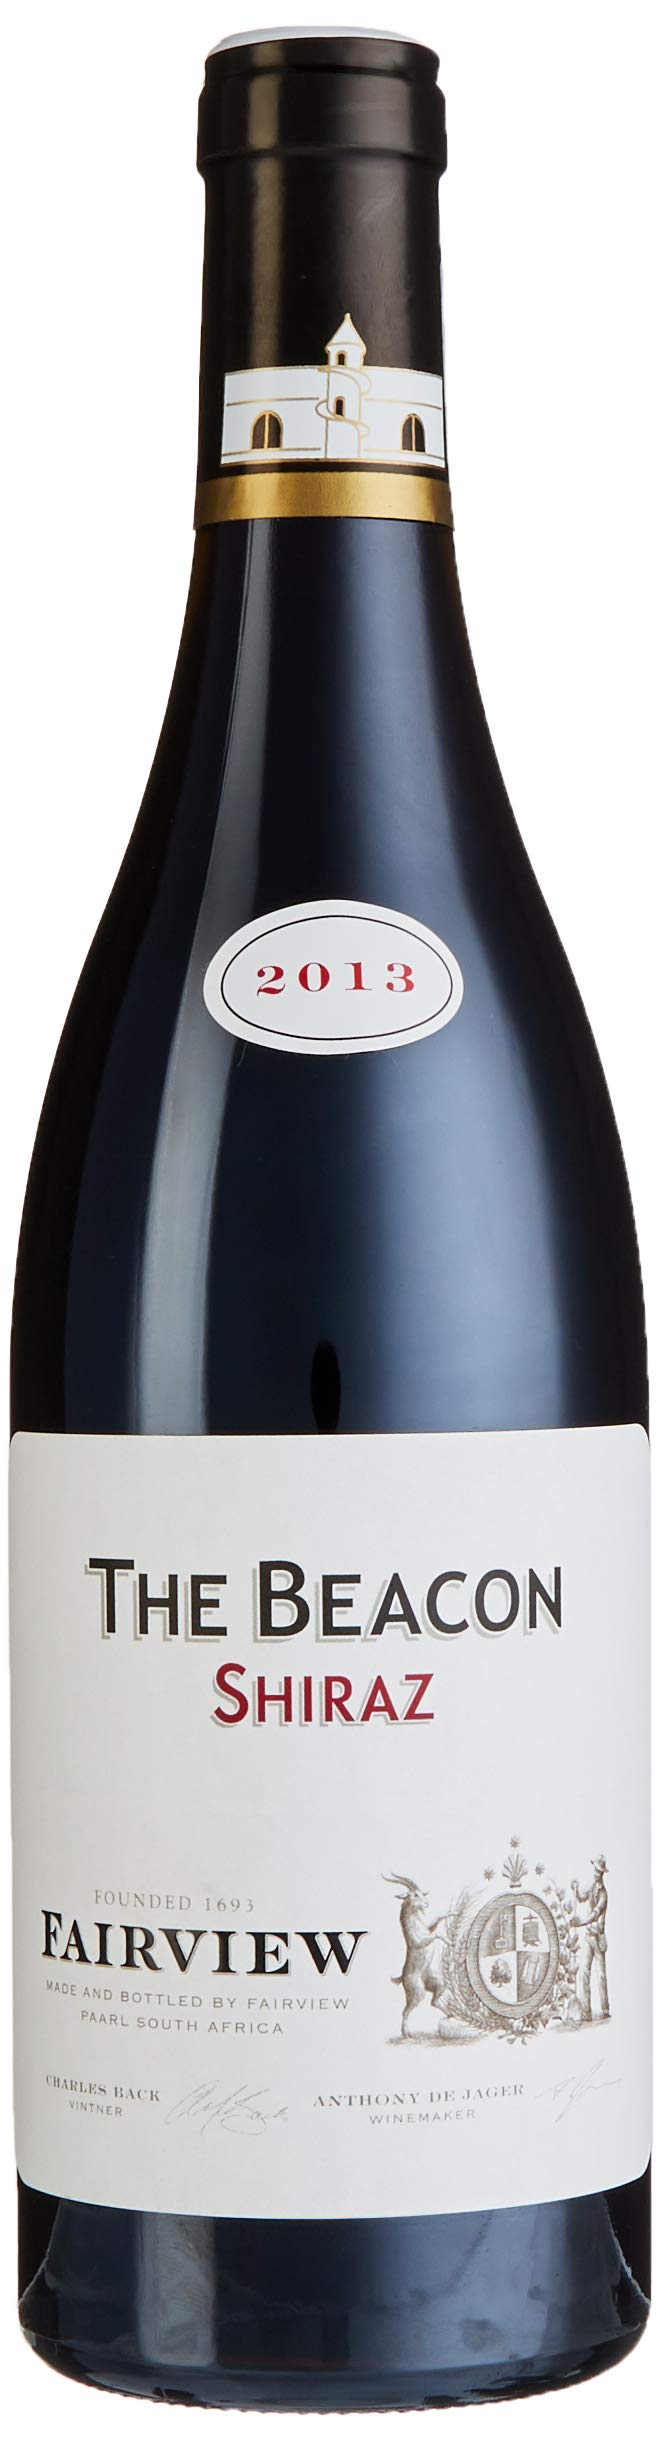 Fairview-Wines-The-Beacon-Shiraz-2013-1-x-075-l